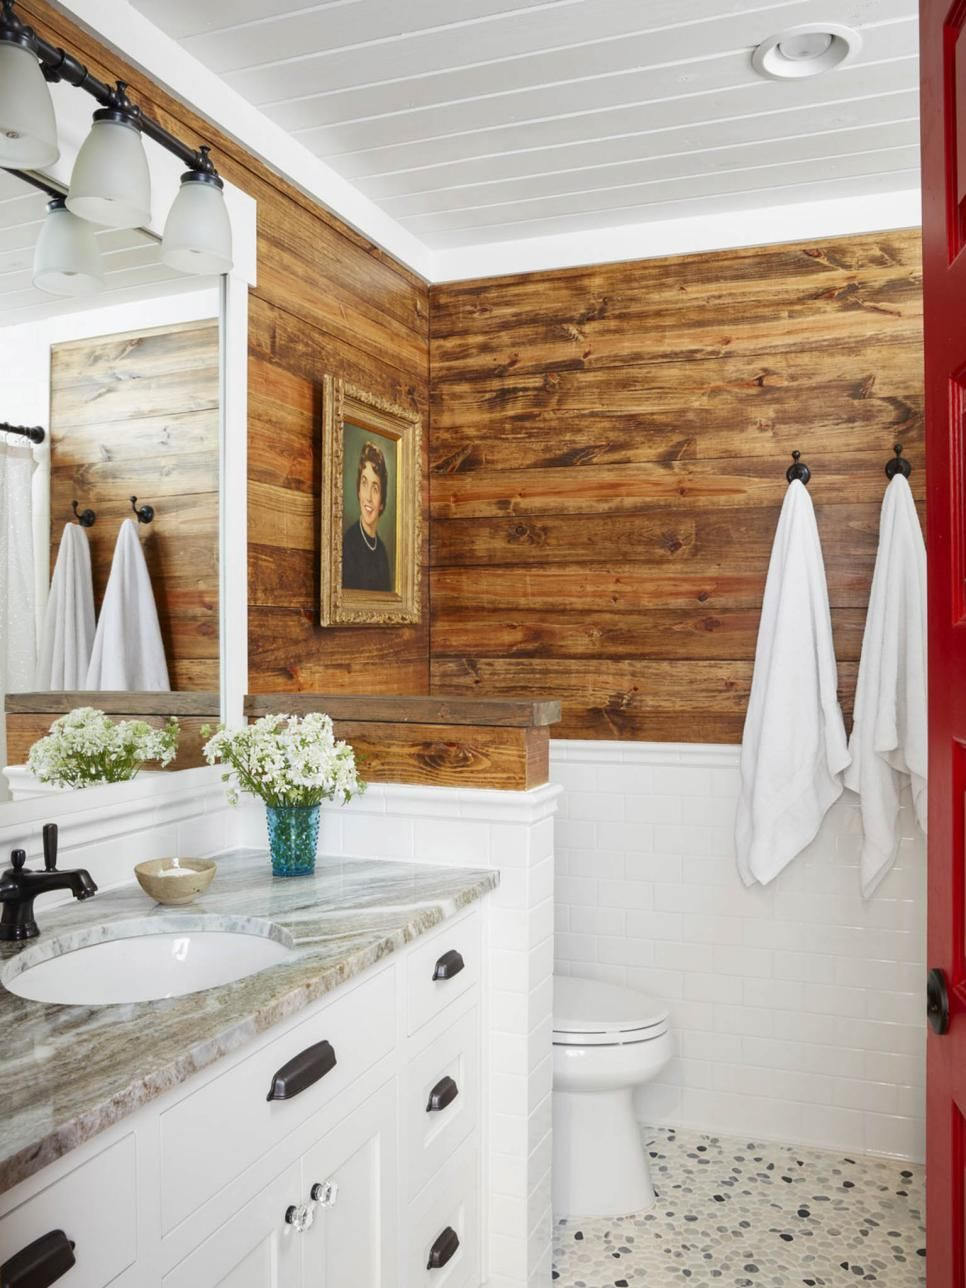 Home decorating inspiration from a rustic yet refined home hgtv magazine hgtv and lakes Bathroom design spa look